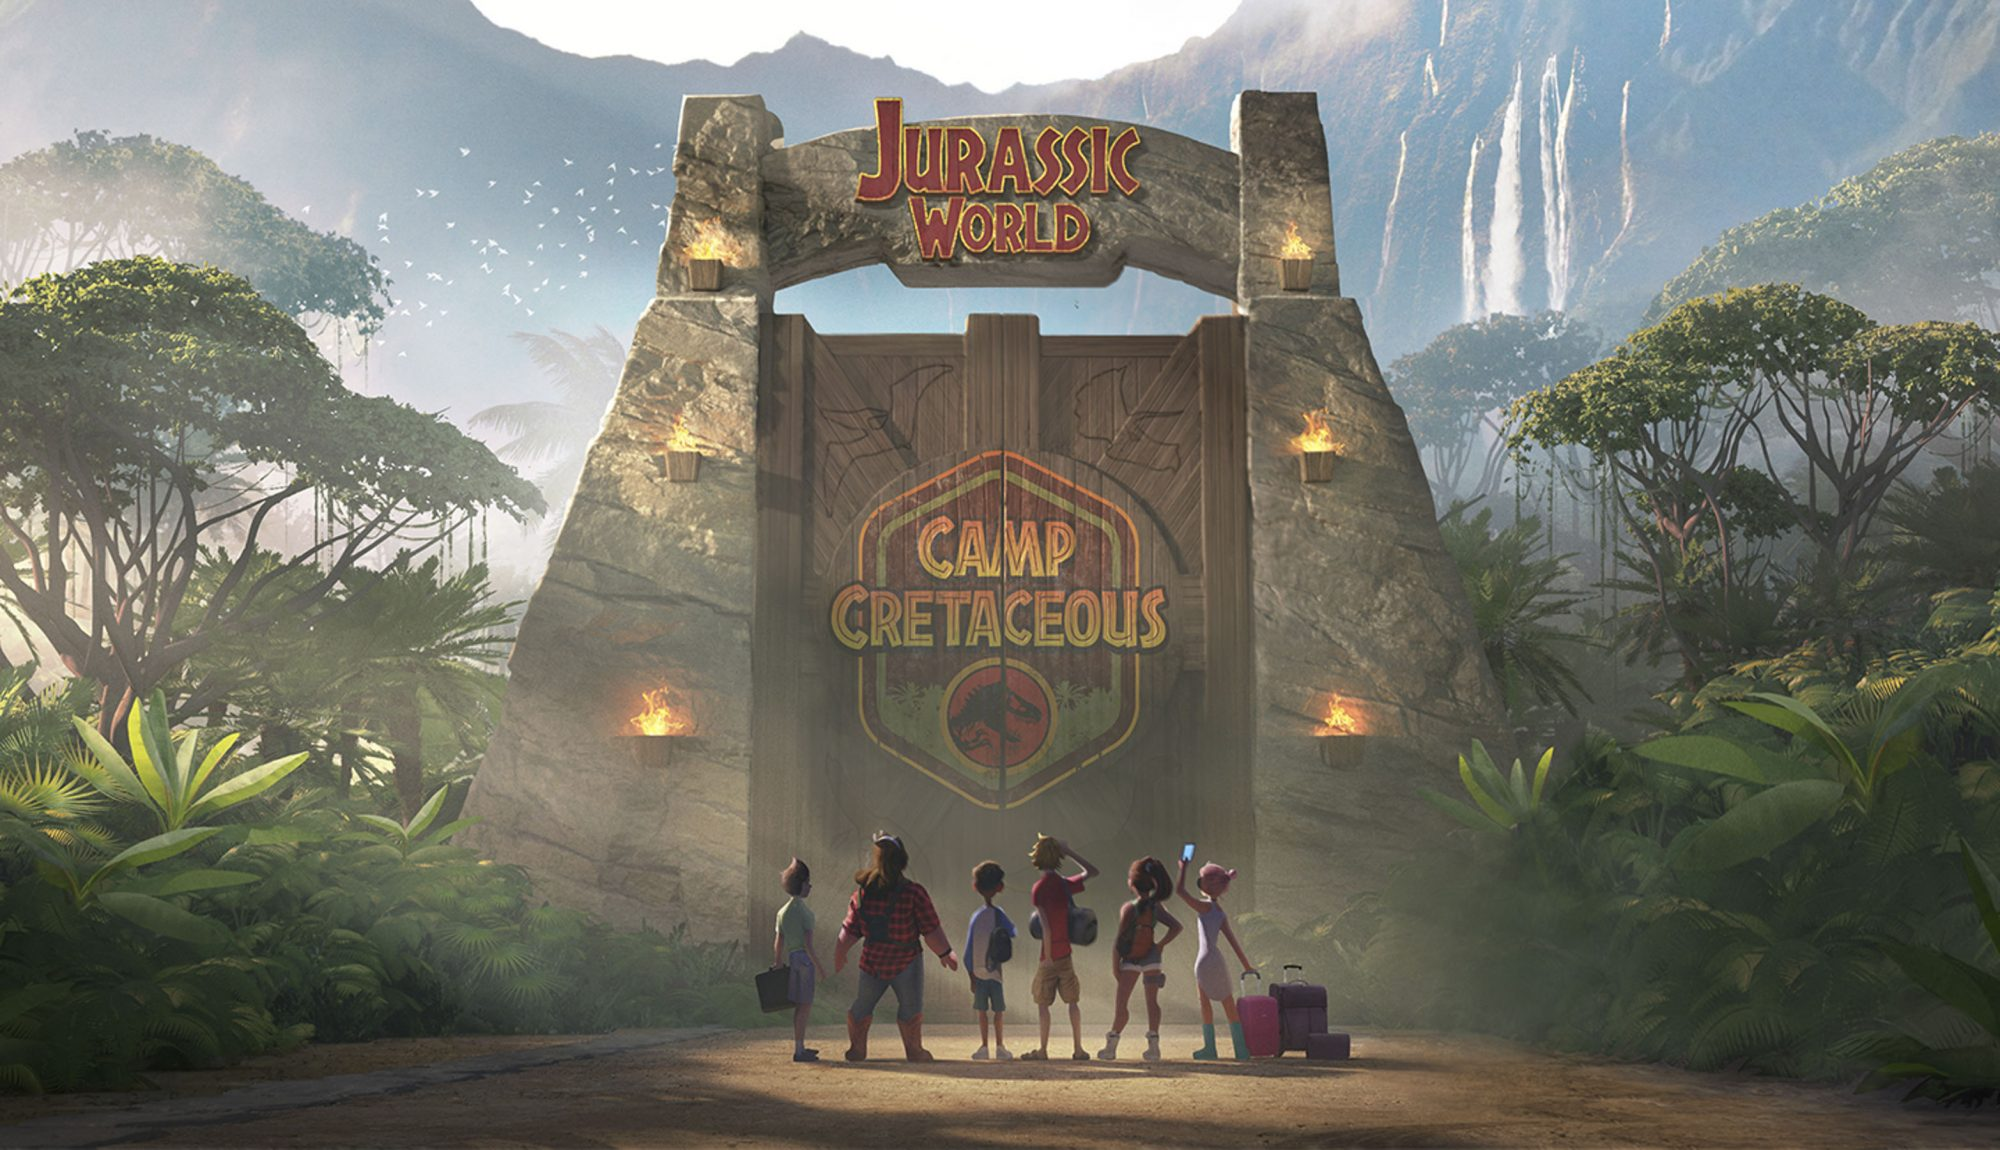 Jurassic World Camp Cretaceous CR: Netflix